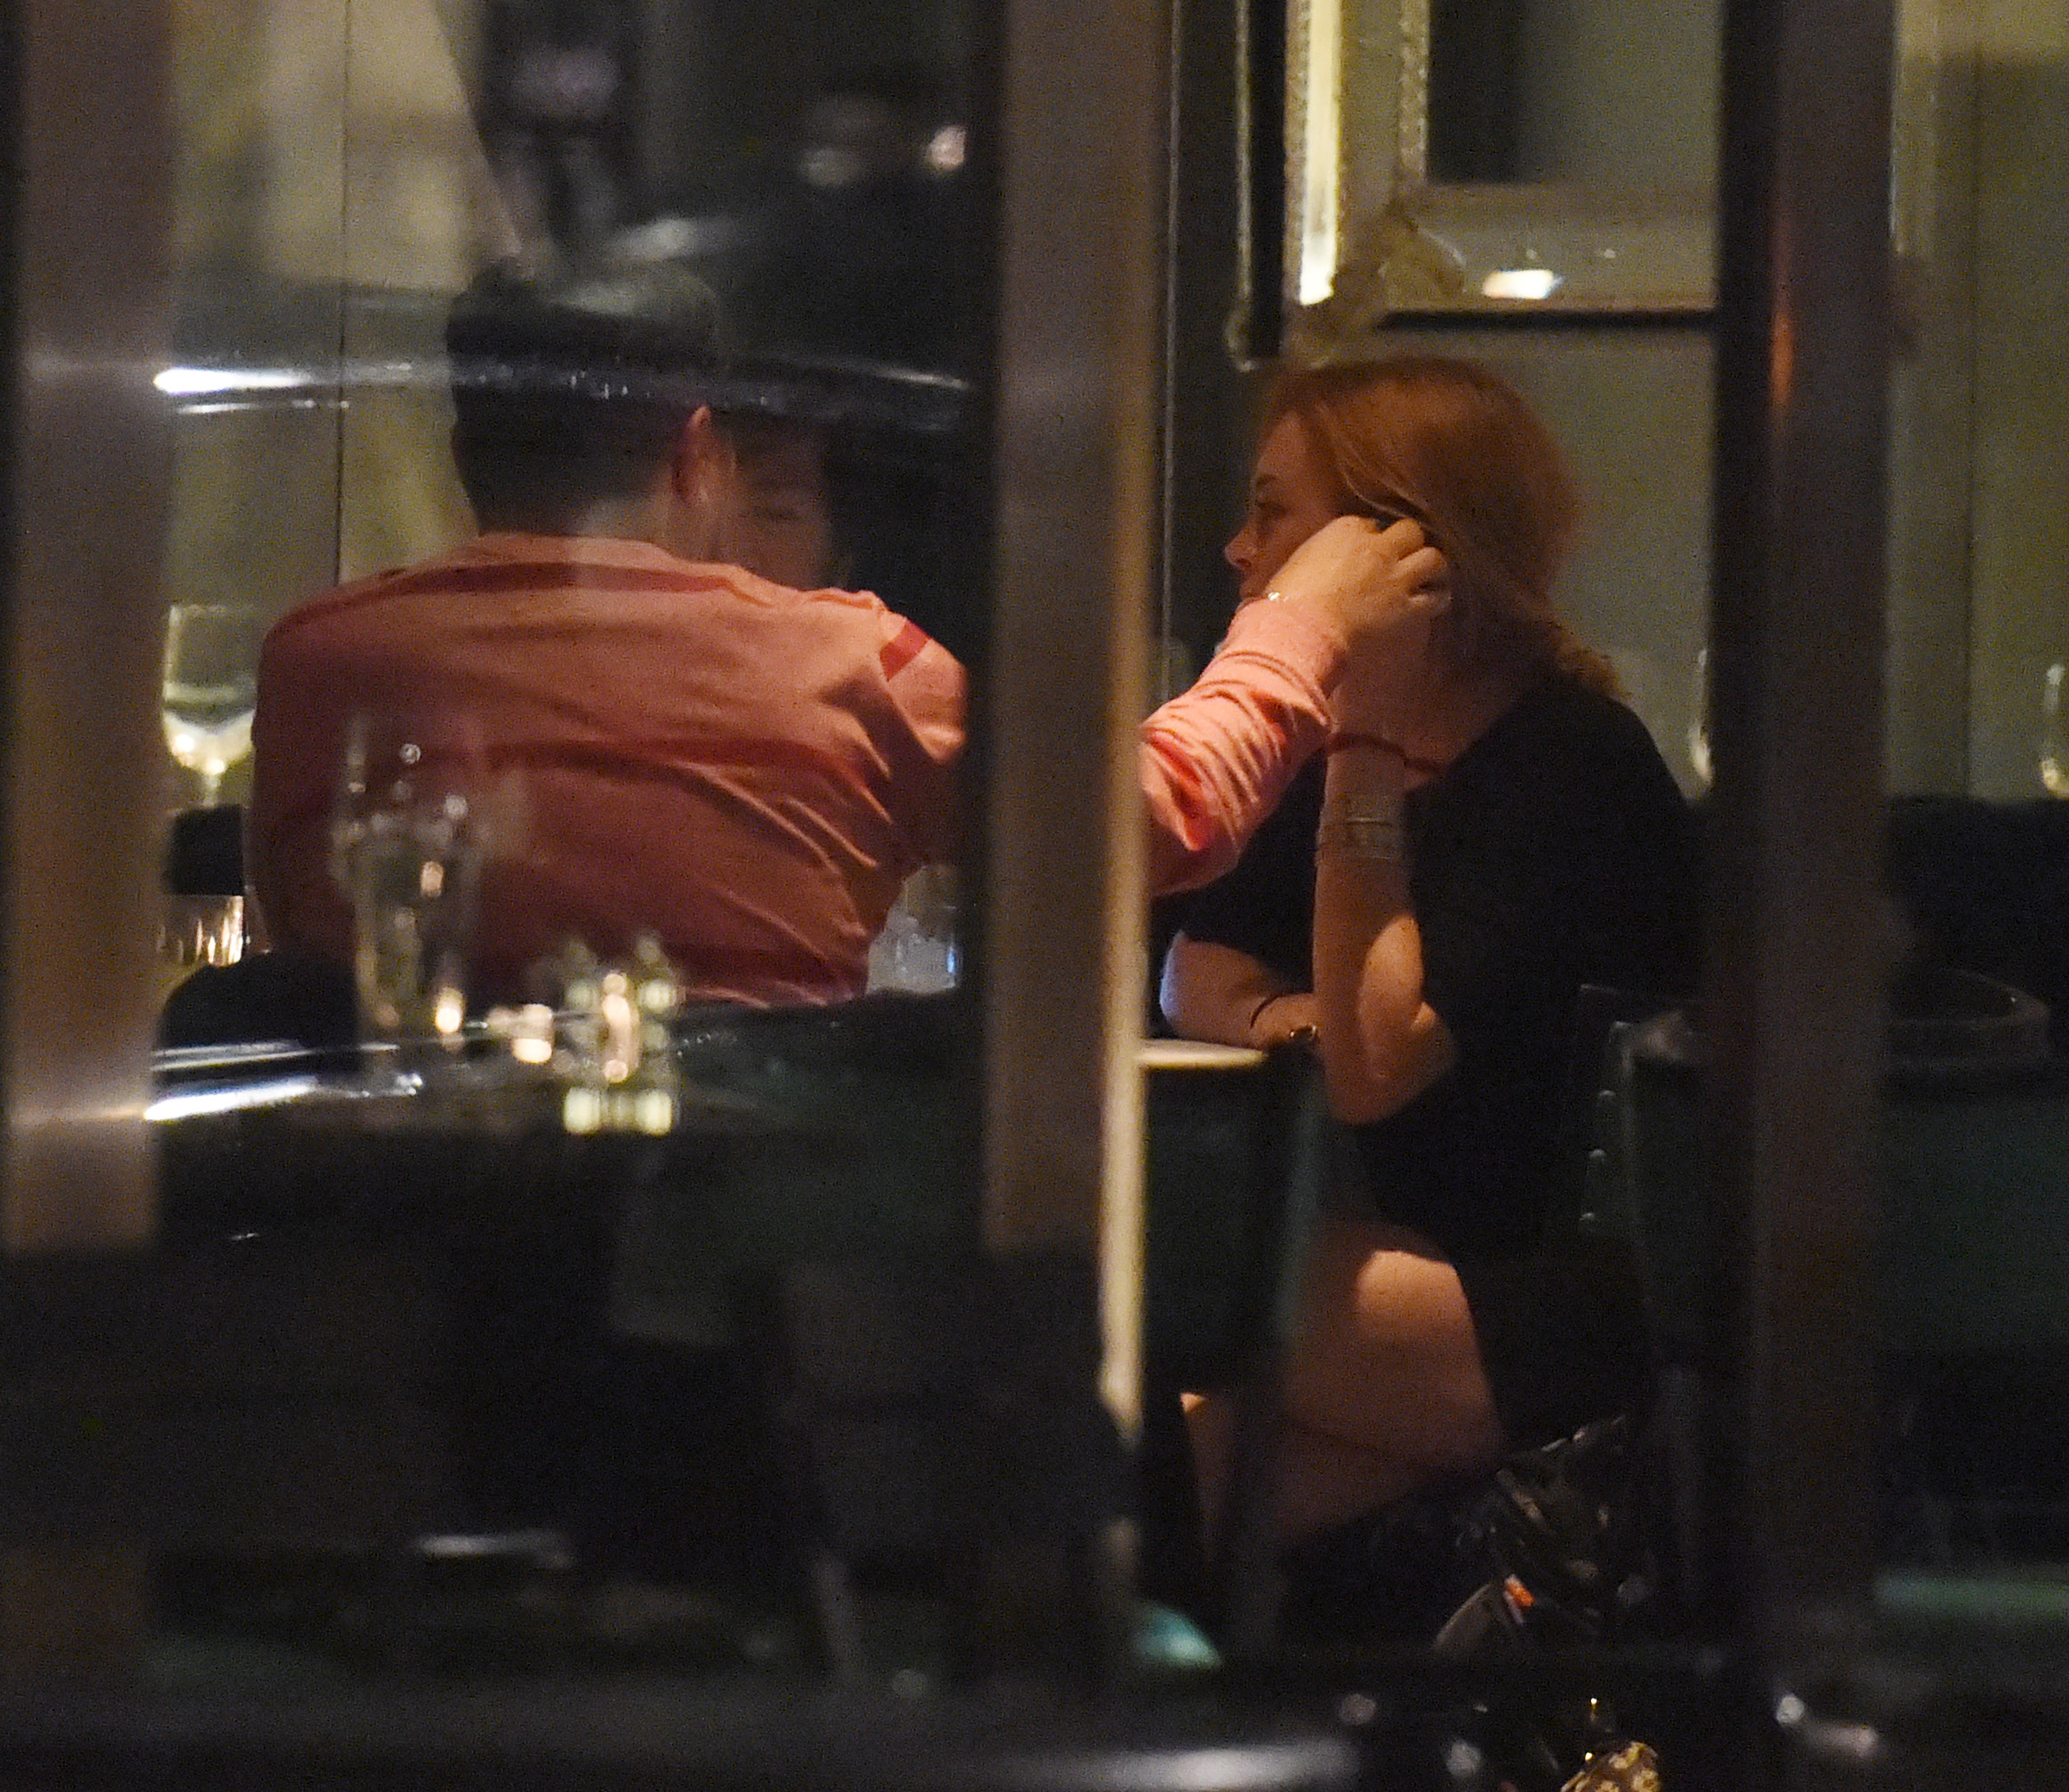 EXCLUSIVE: Lindsay Lohan gets cosy with mystery male companion in London.